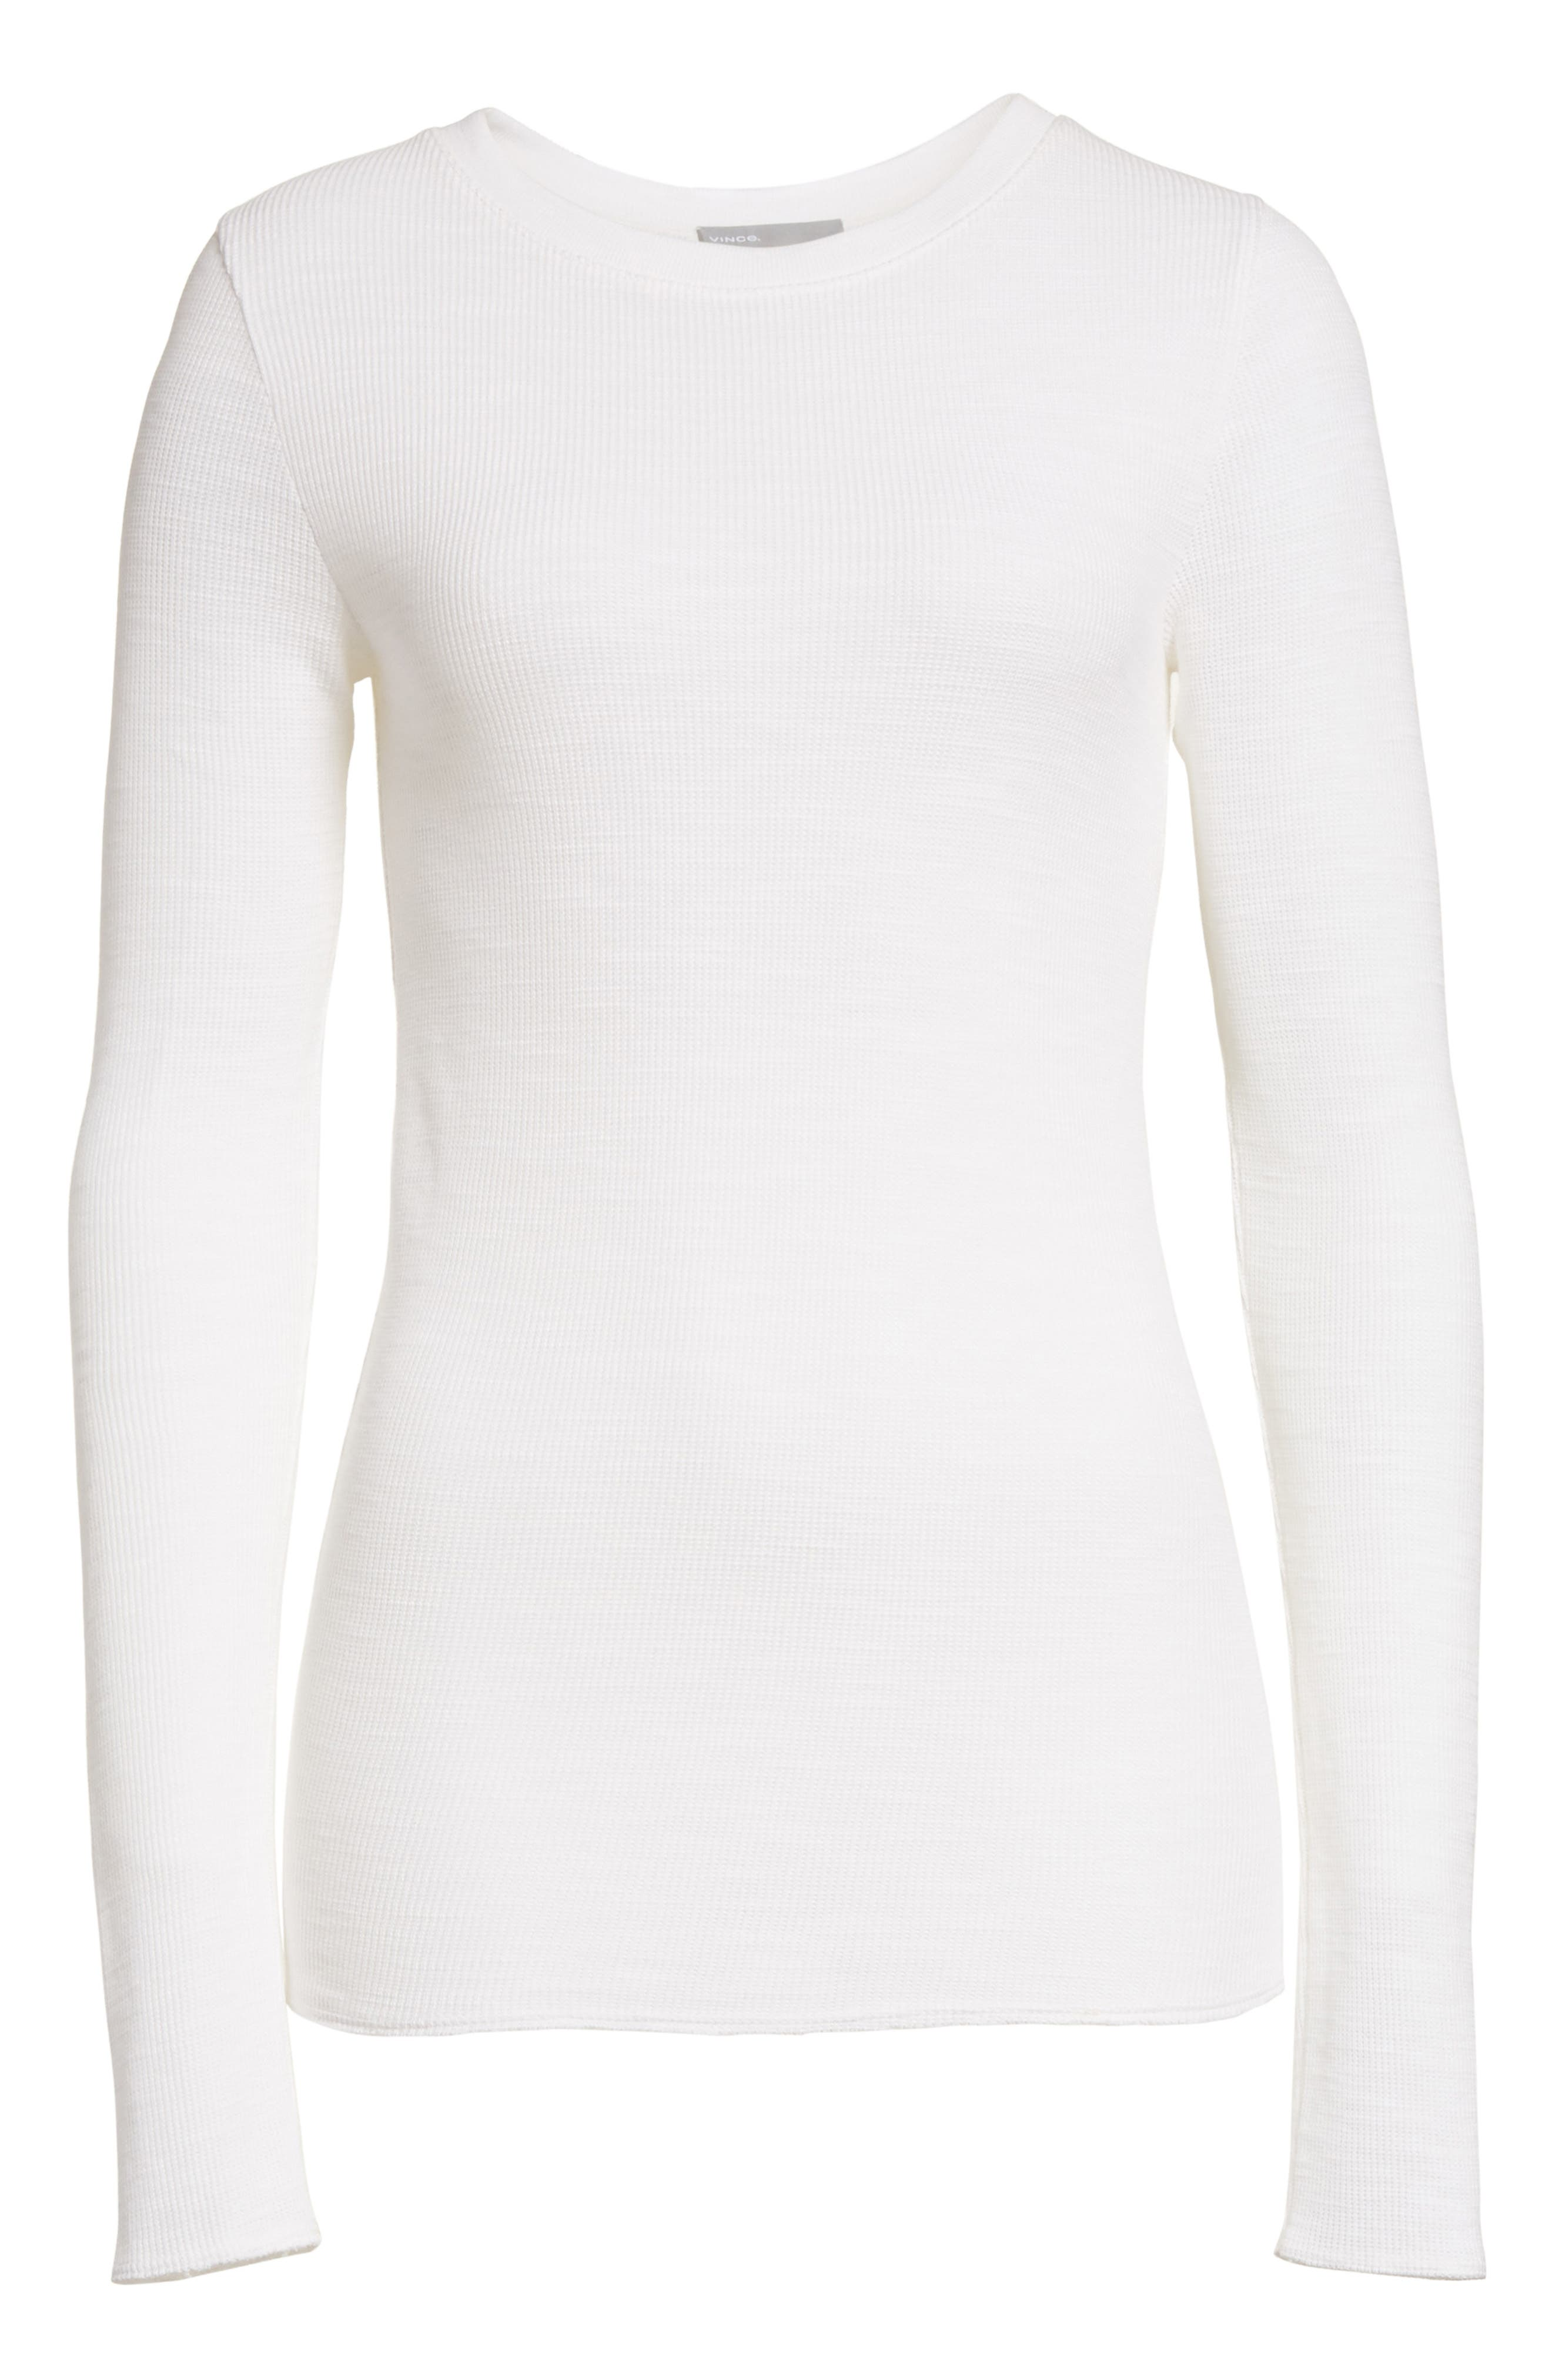 Long Sleeve Thermal Sweater,                             Alternate thumbnail 6, color,                             Off White